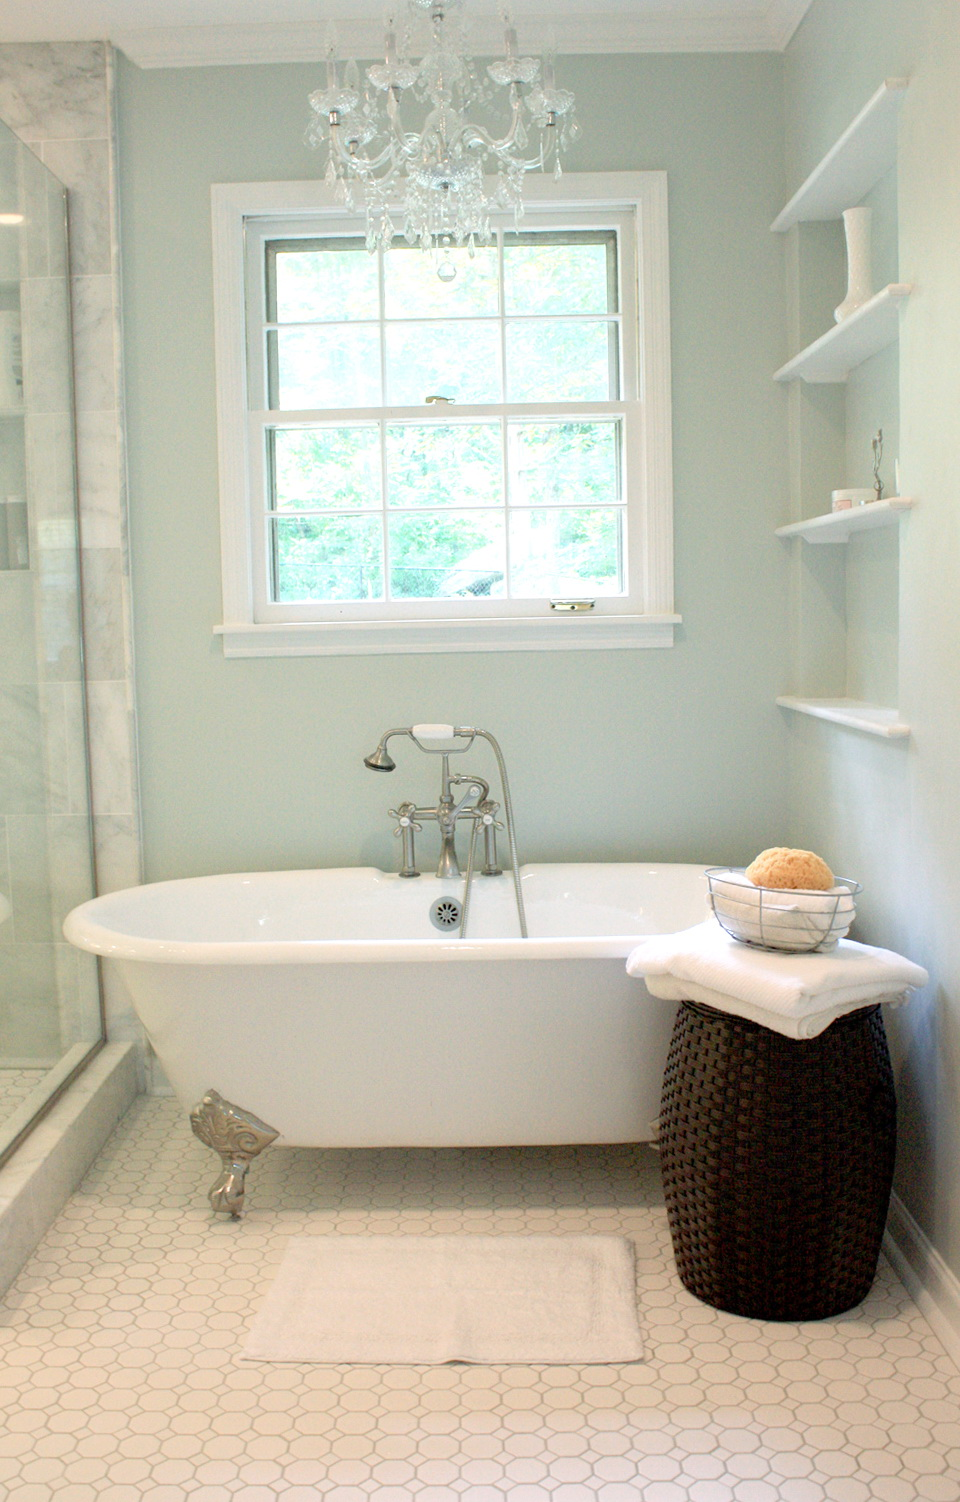 Chandelier Over Clawfoot Tub Home Design Ideas